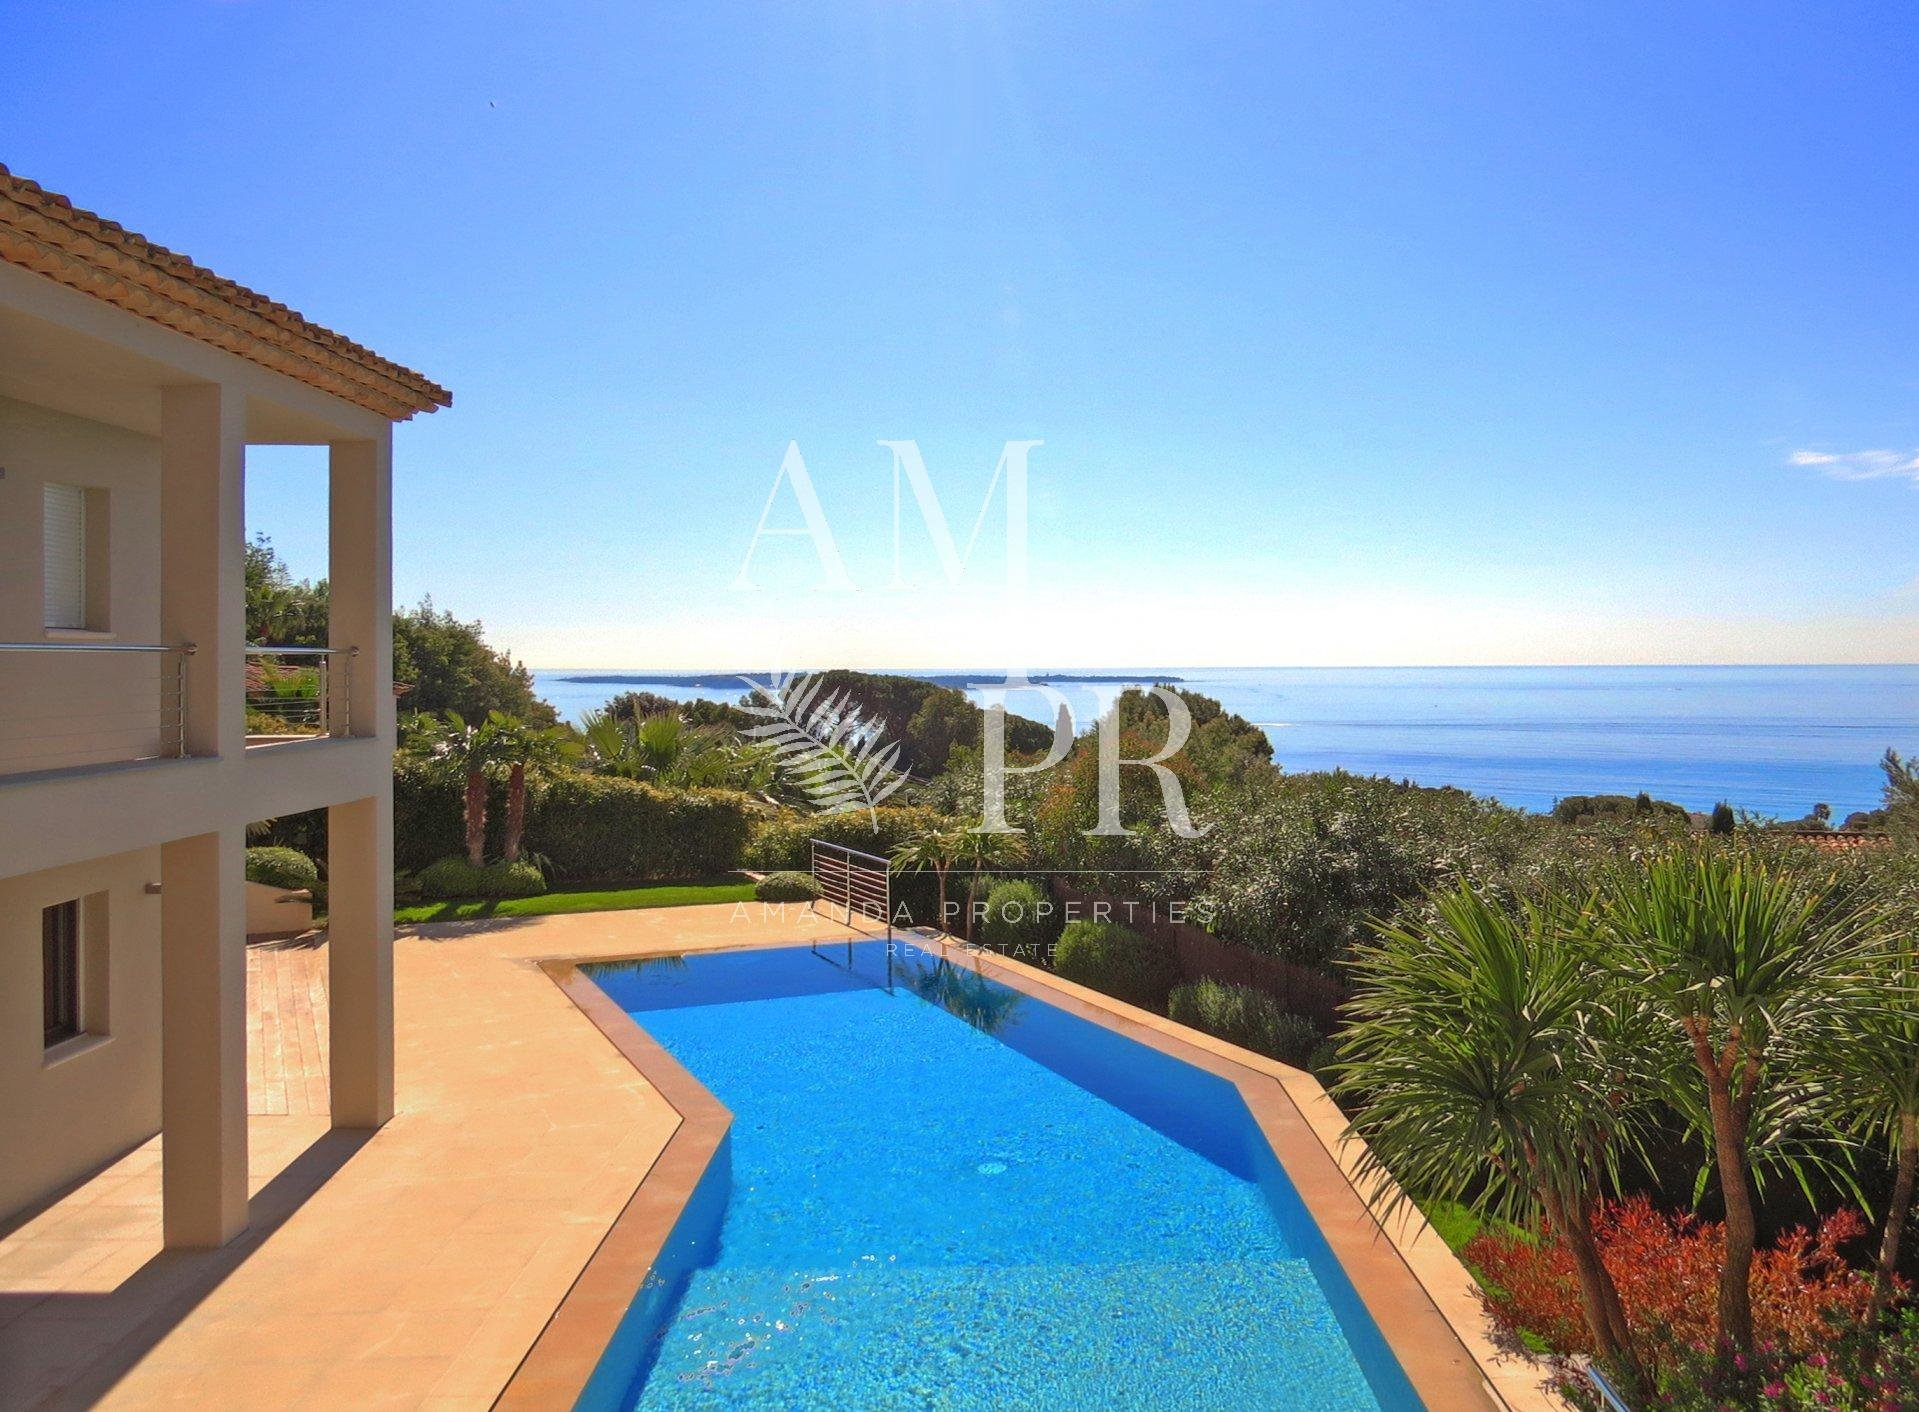 Brand new contemporary villa - Panoramic sea view - Cannes Croix des Gardes